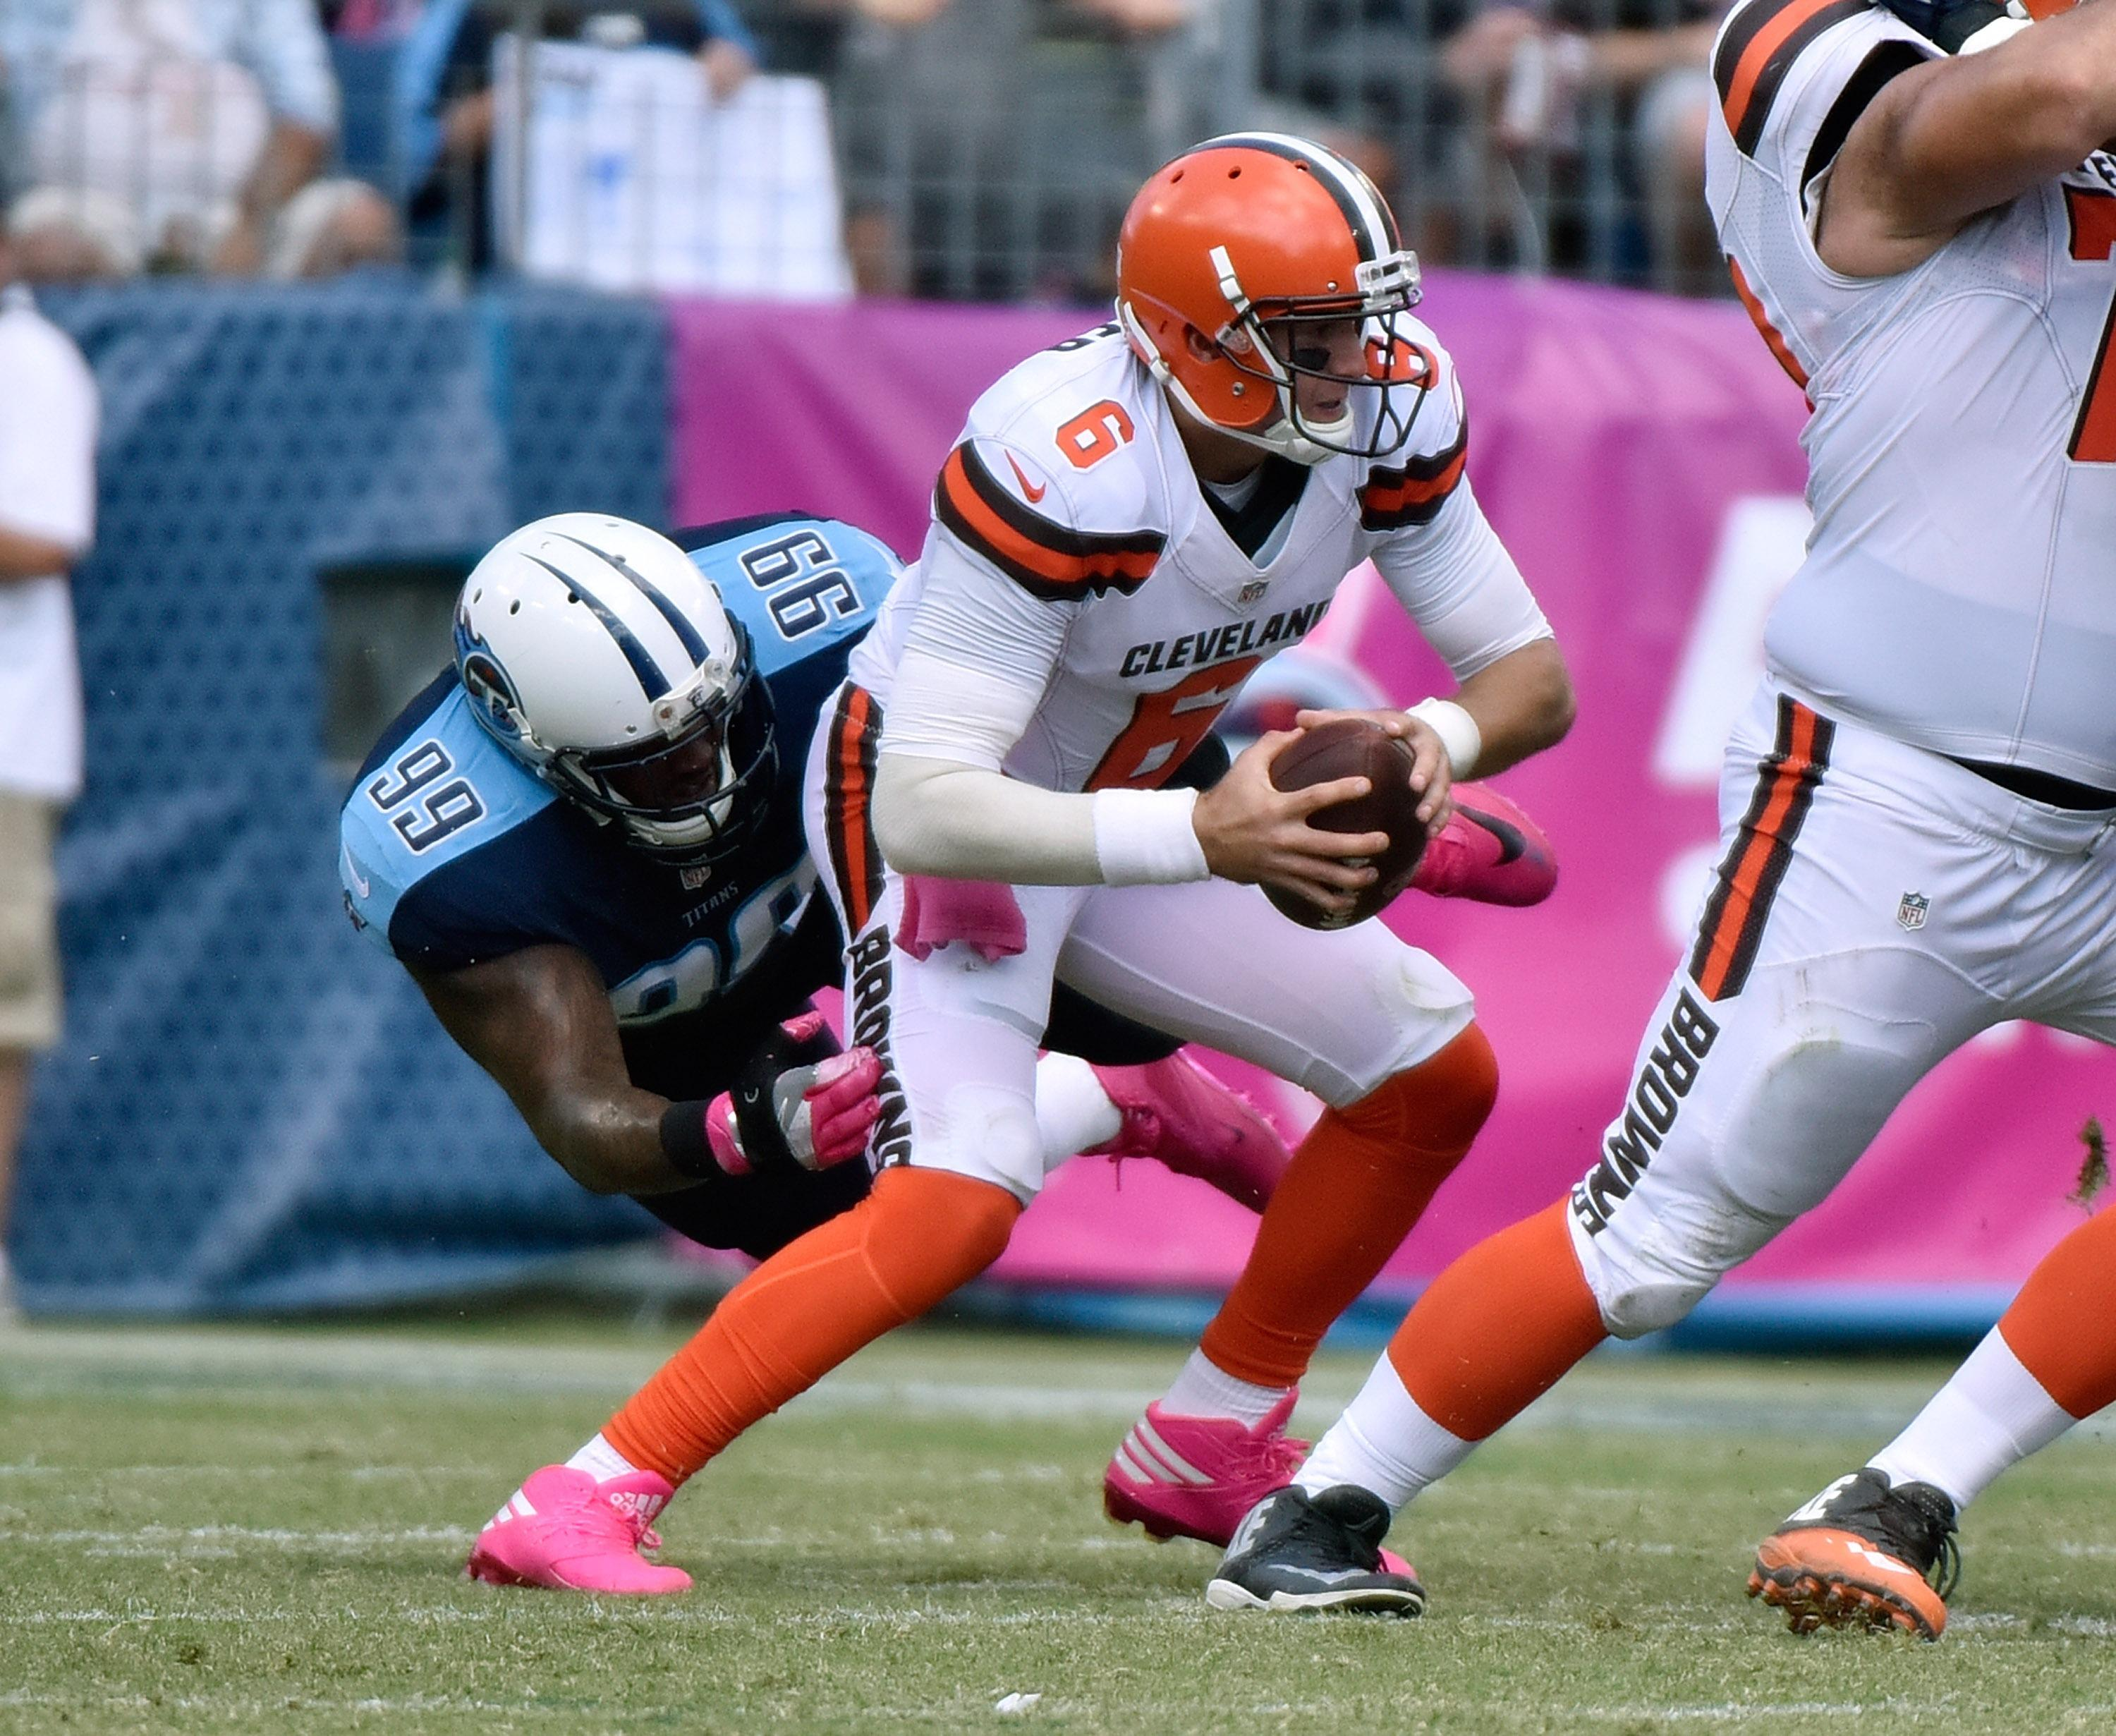 Cleveland Browns coach Hue Jackson 'disappointed' by Cody Kessler's concussion